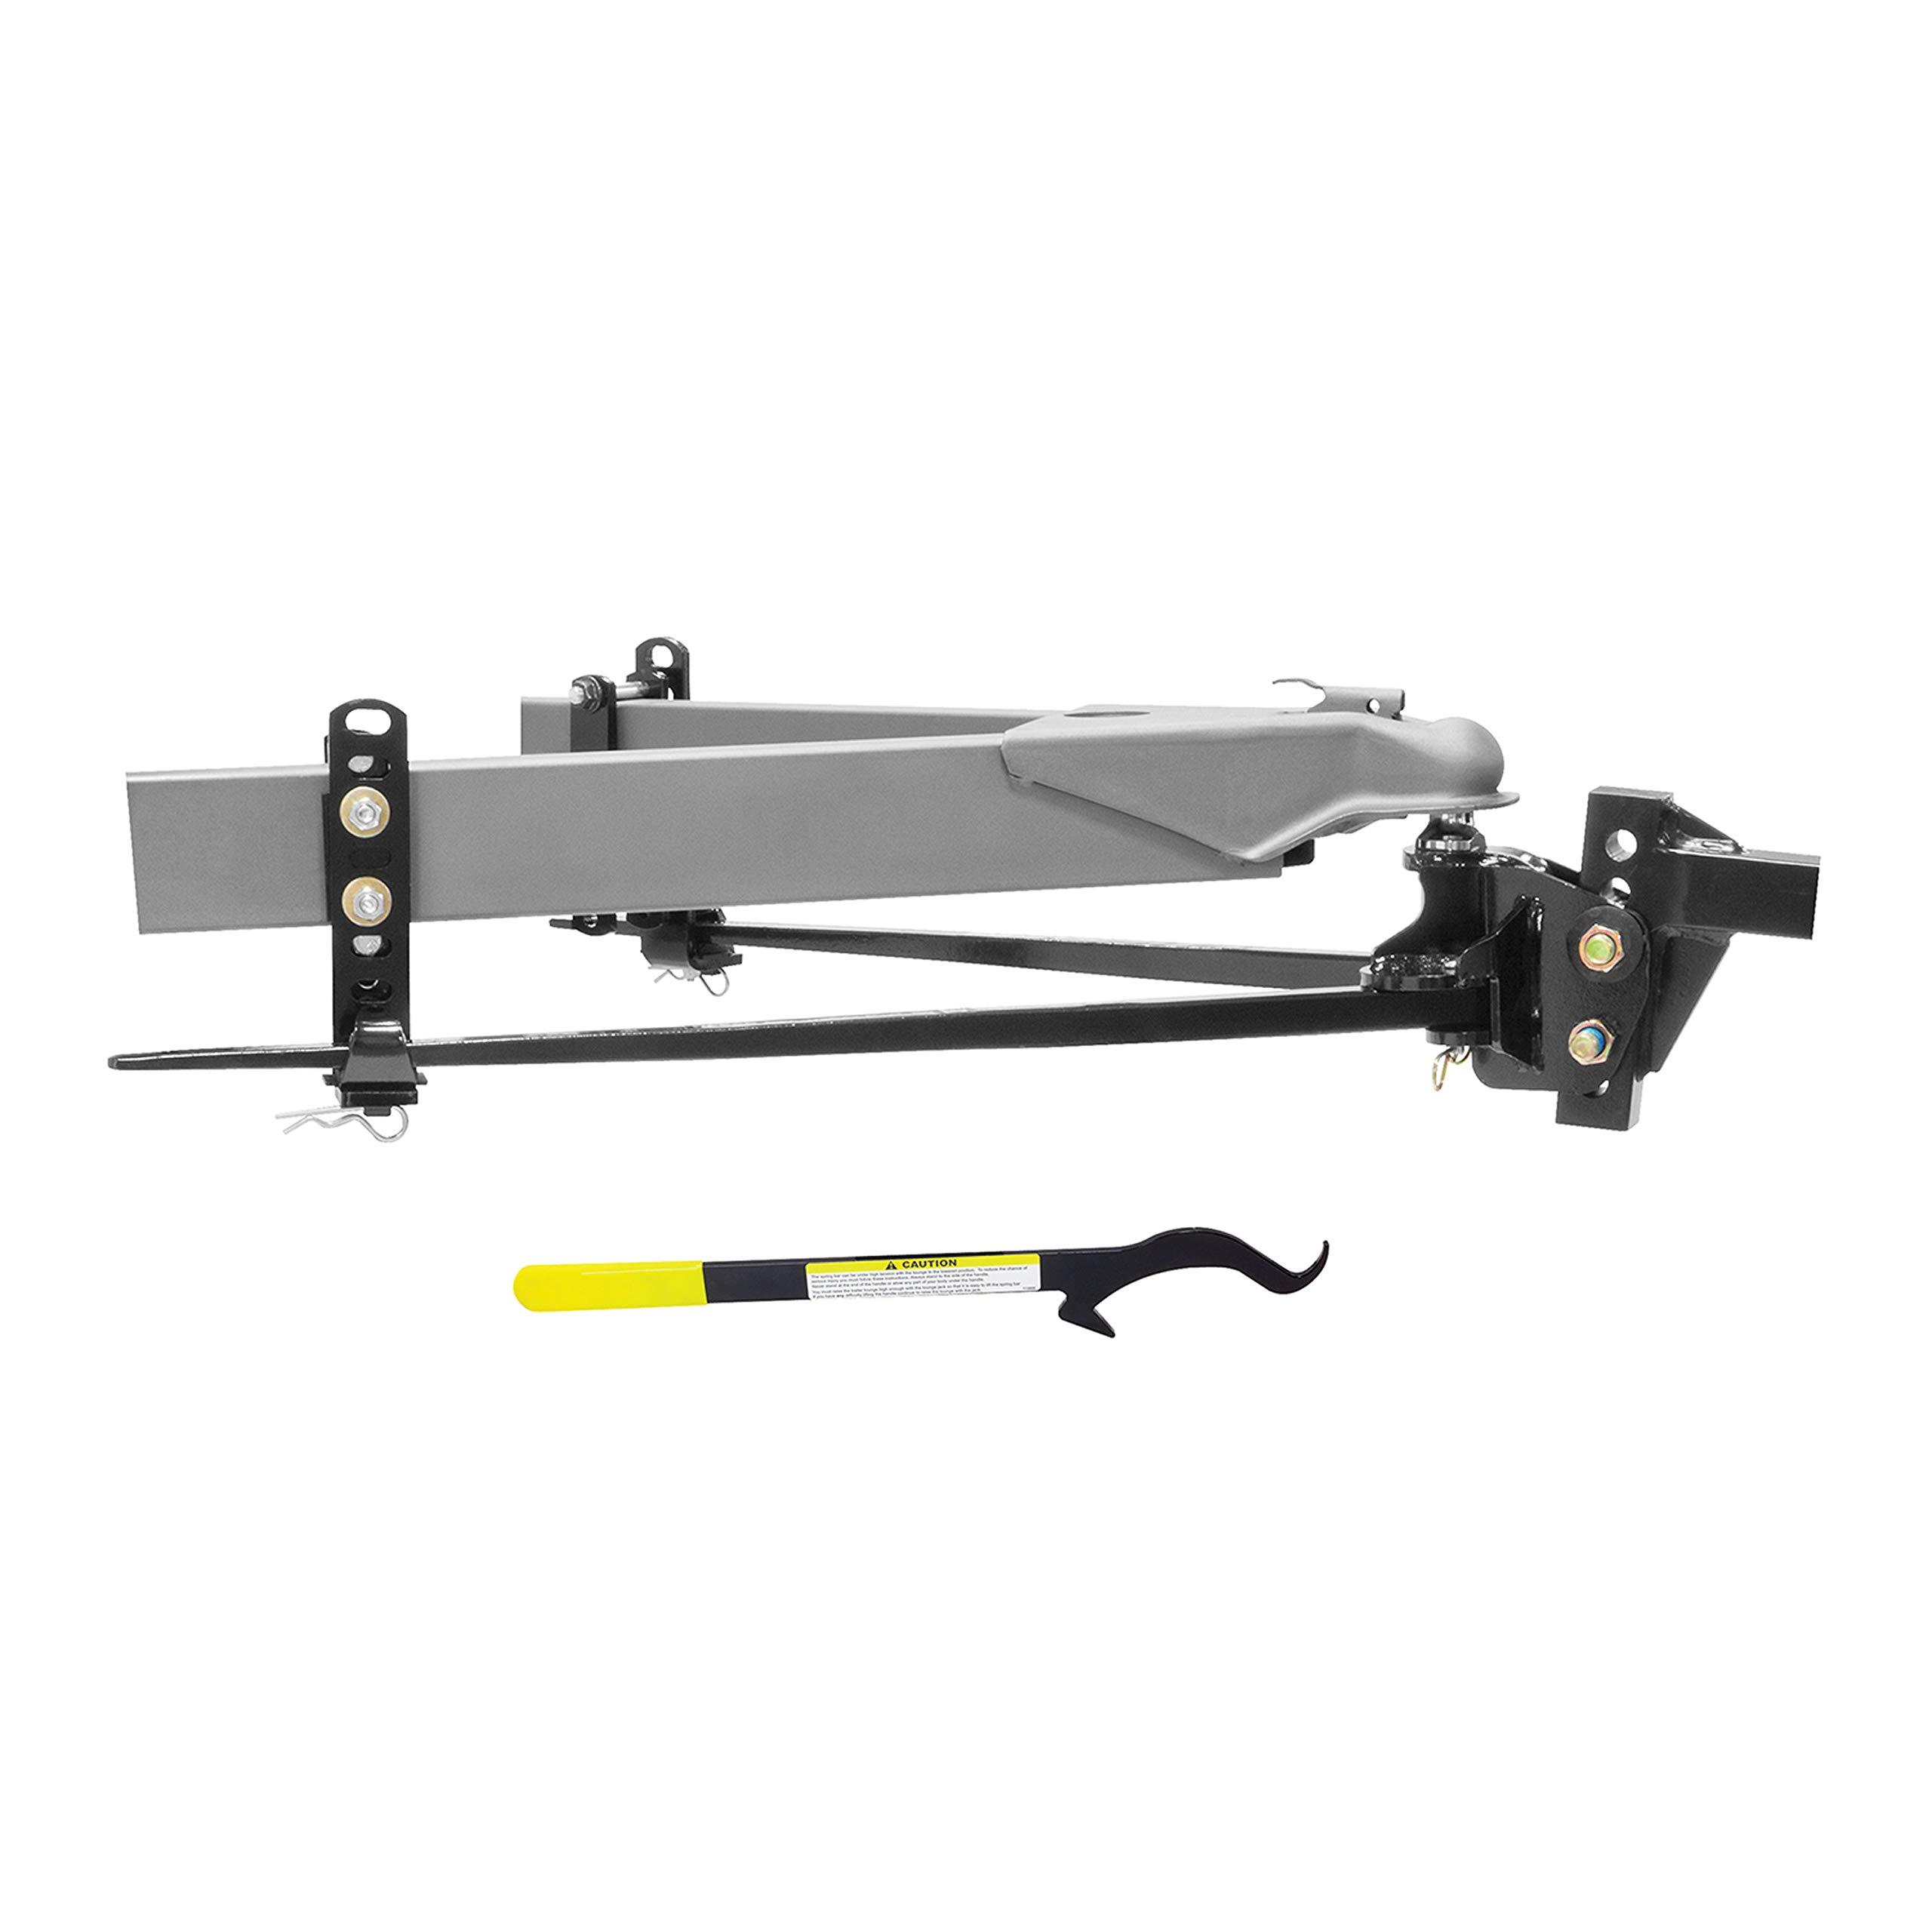 Reese 66558 Steadi-Flex Lw Wd 400-600# by Reese